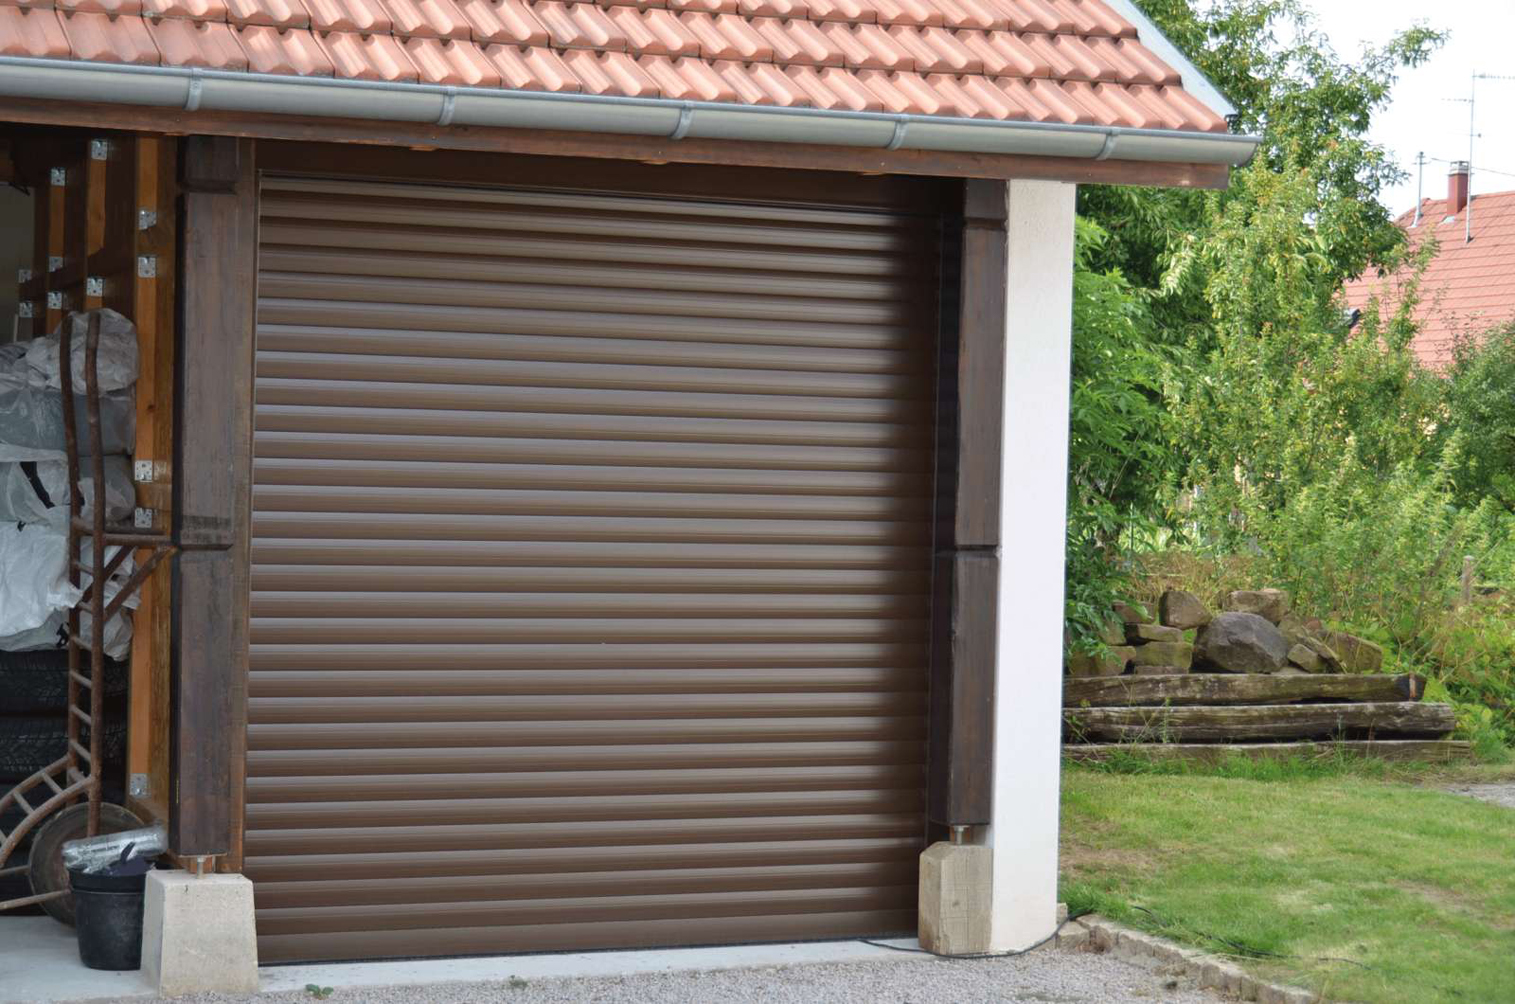 Nouvelle porte de garage enroulable carrol de soprofen for Porte de garage couleur bordeaux